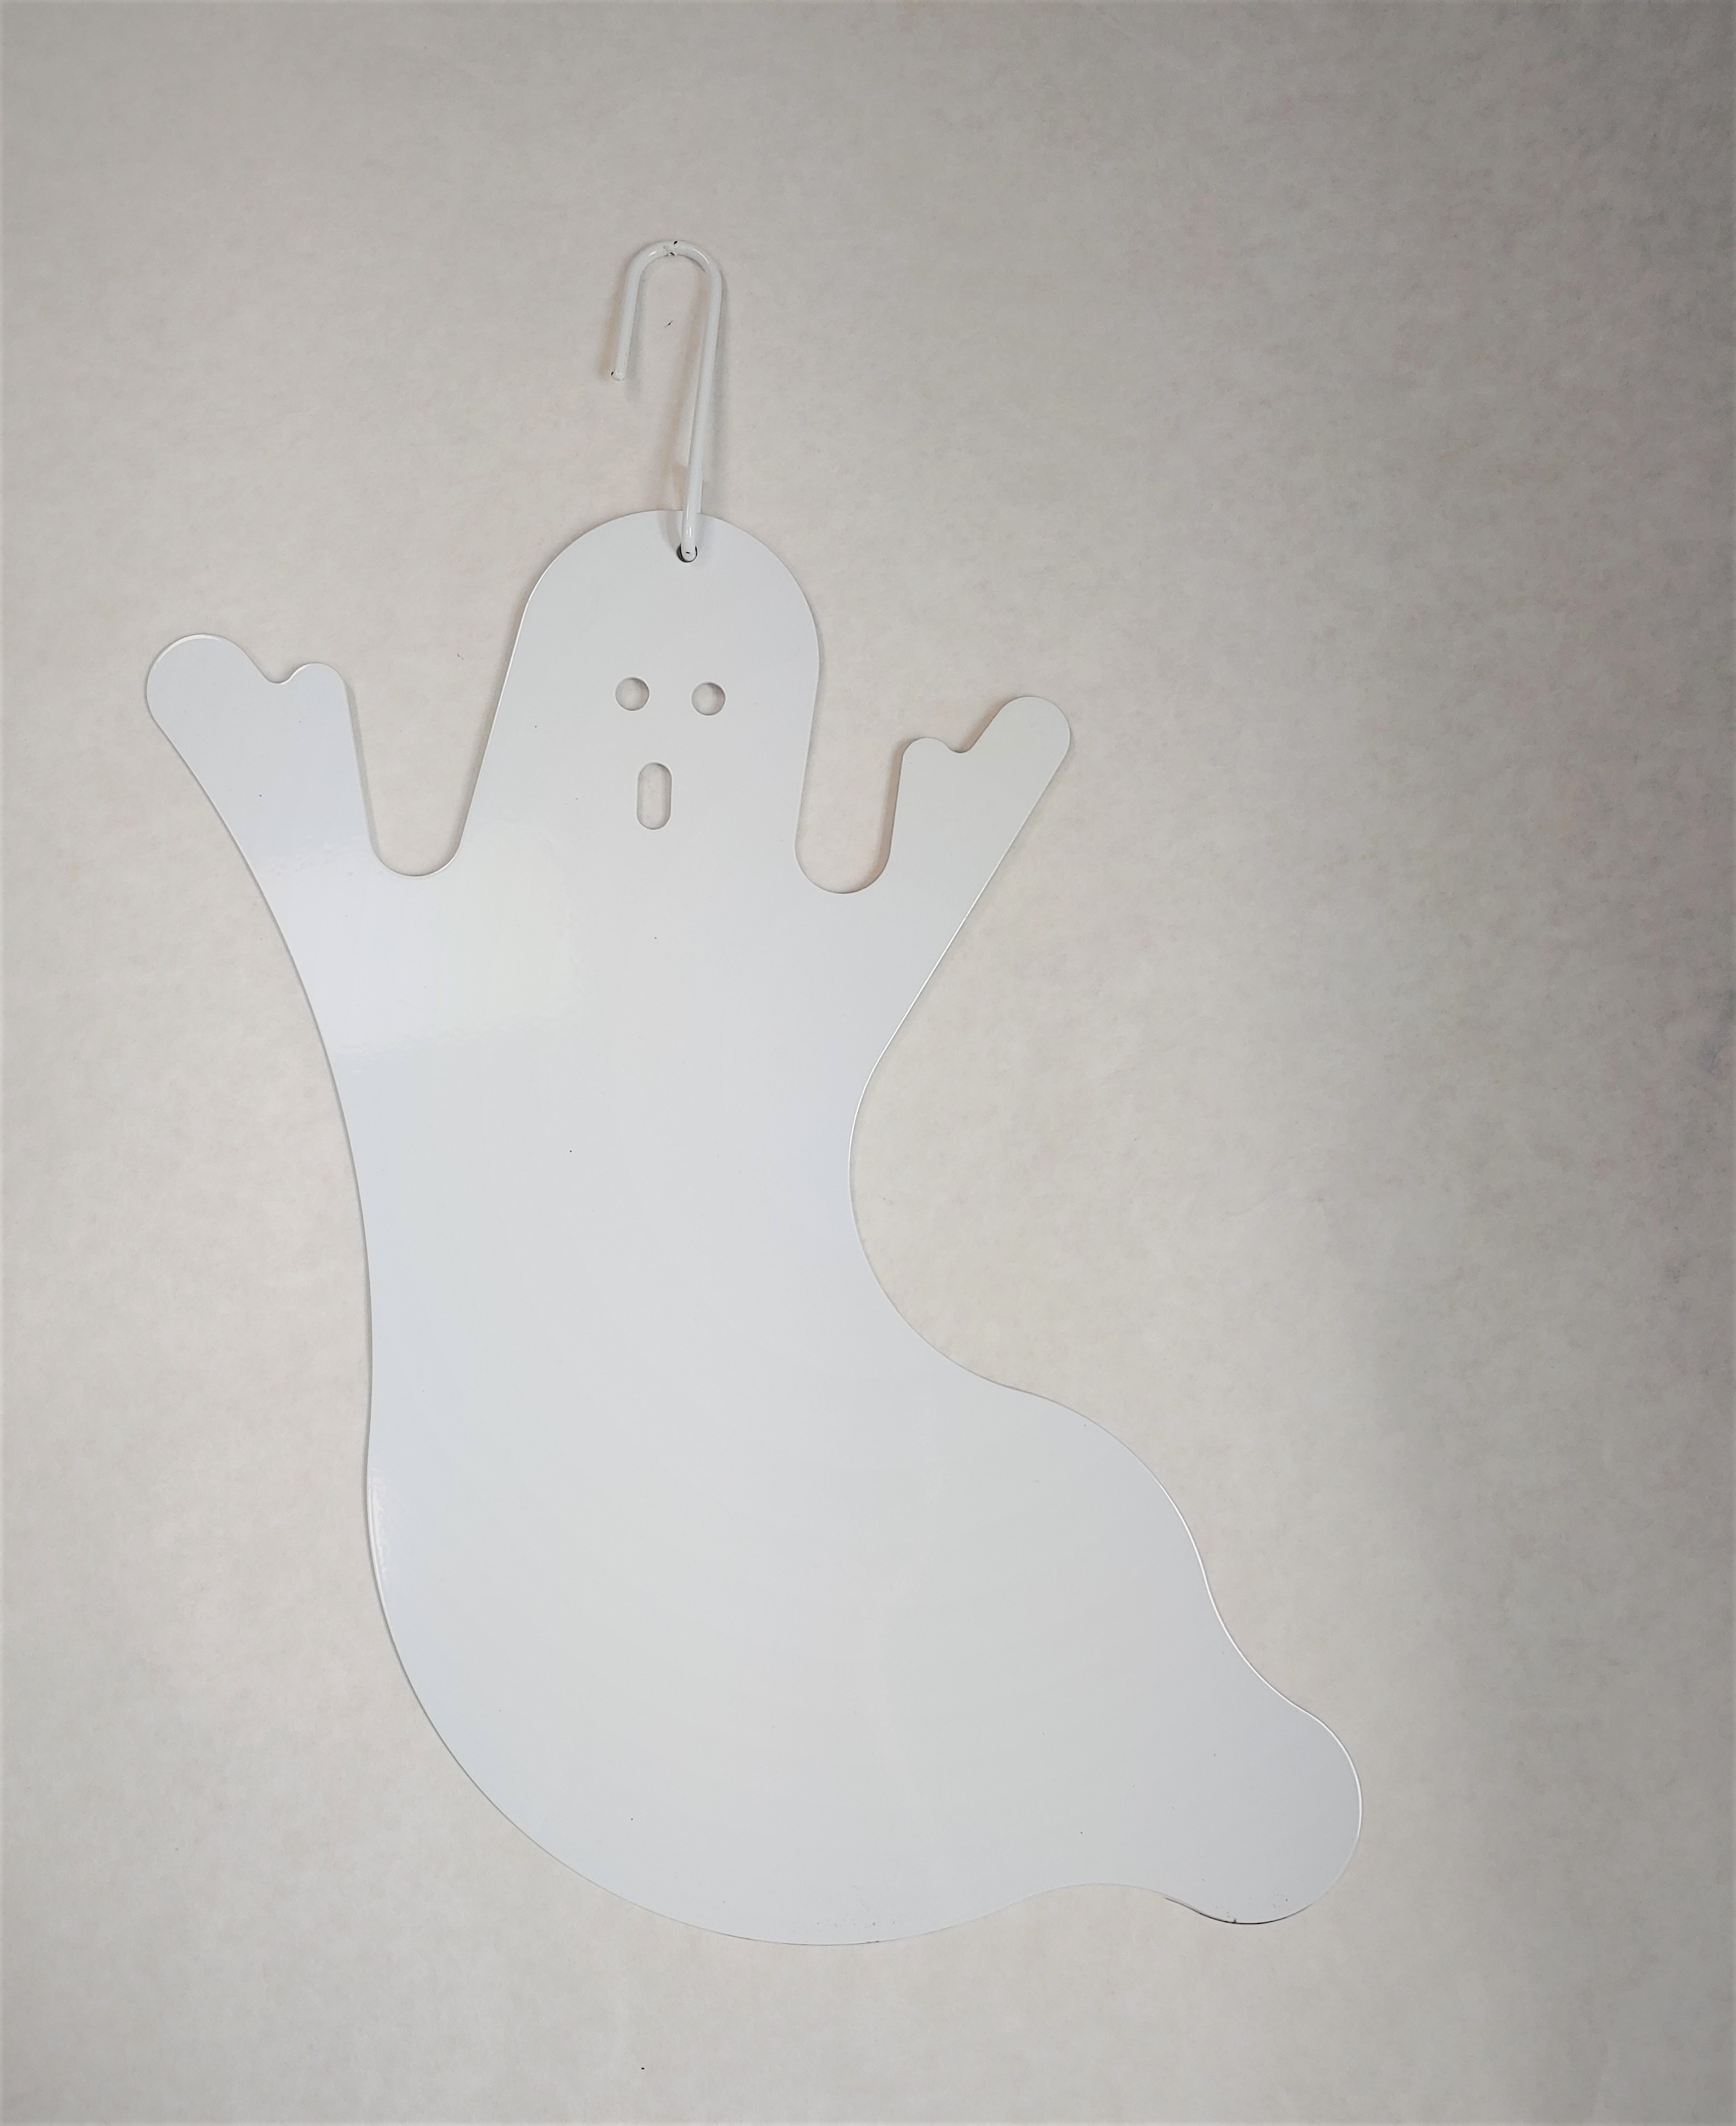 Ghost - WHITE - Decorative Hanging Silhouette